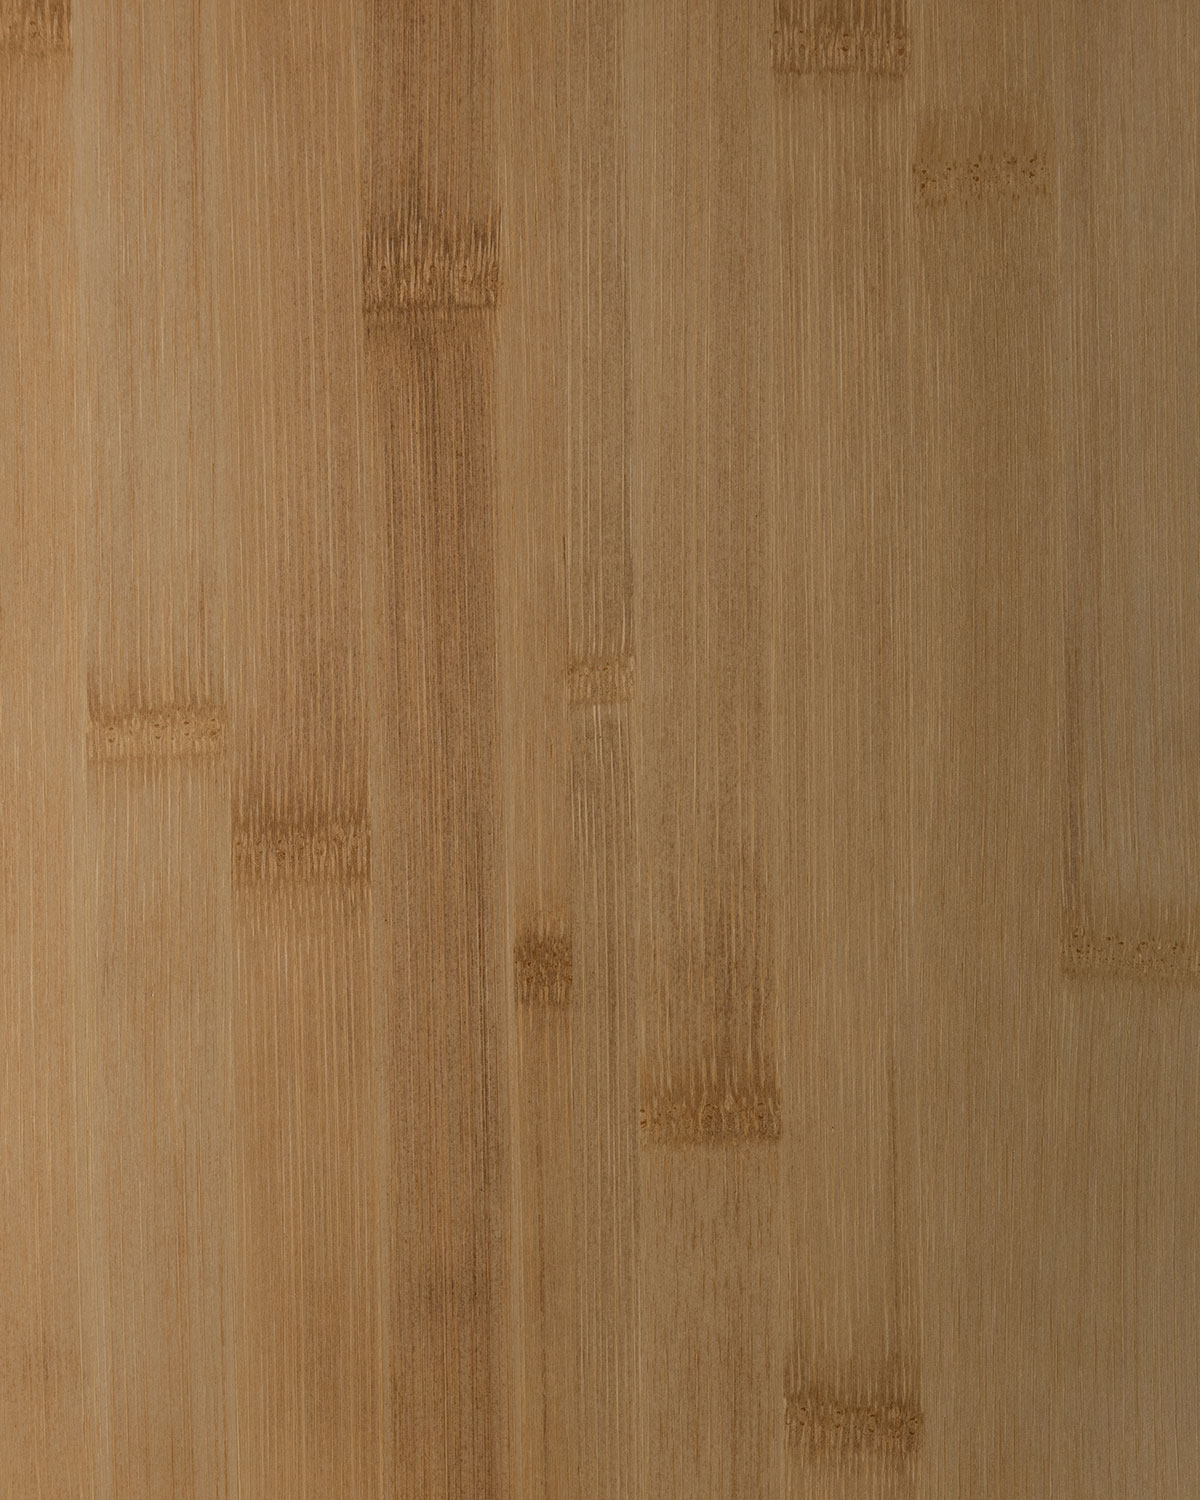 Bamboo, Wide Natural Color